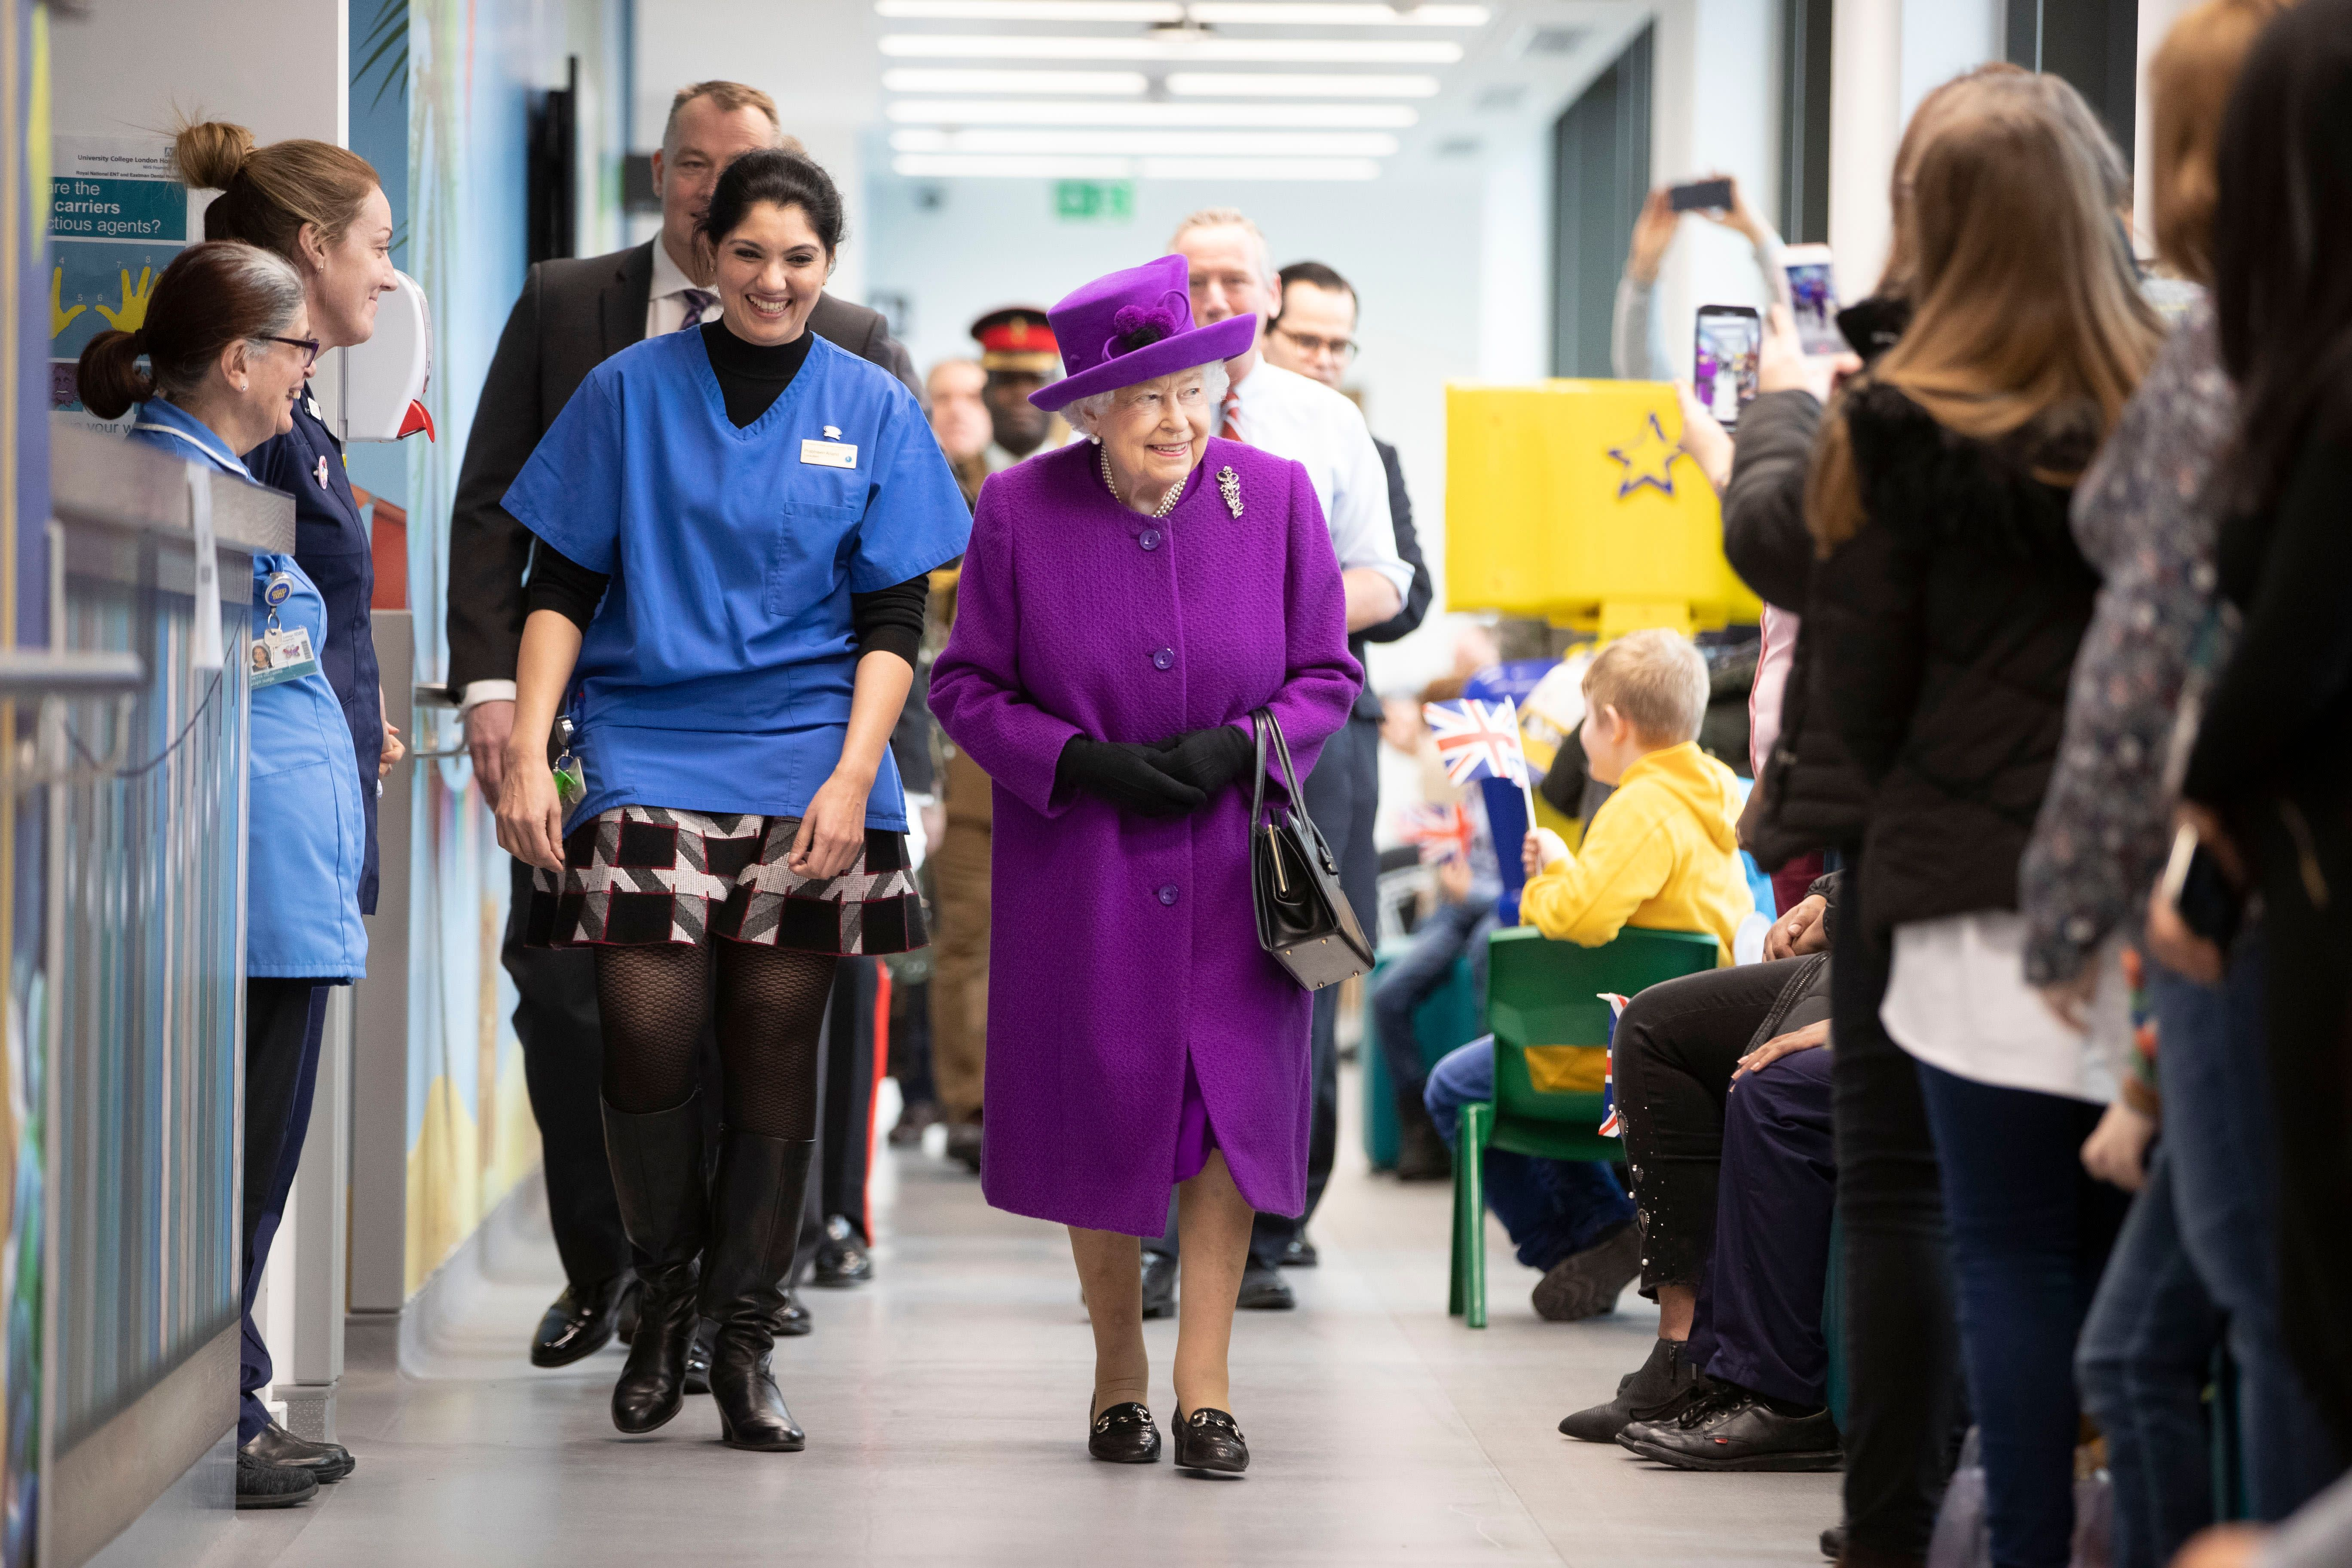 Britain's Queen Elizabeth II gestures during her visit to open the new premises of the Royal National ENT and Eastman Dental Hospital in central London on February 19, 2020. (Photo by Heathcliff O'Malley / POOL / AFP) (Photo by HEATHCLIFF O'MALLEY/POOL/AFP via Getty Images)